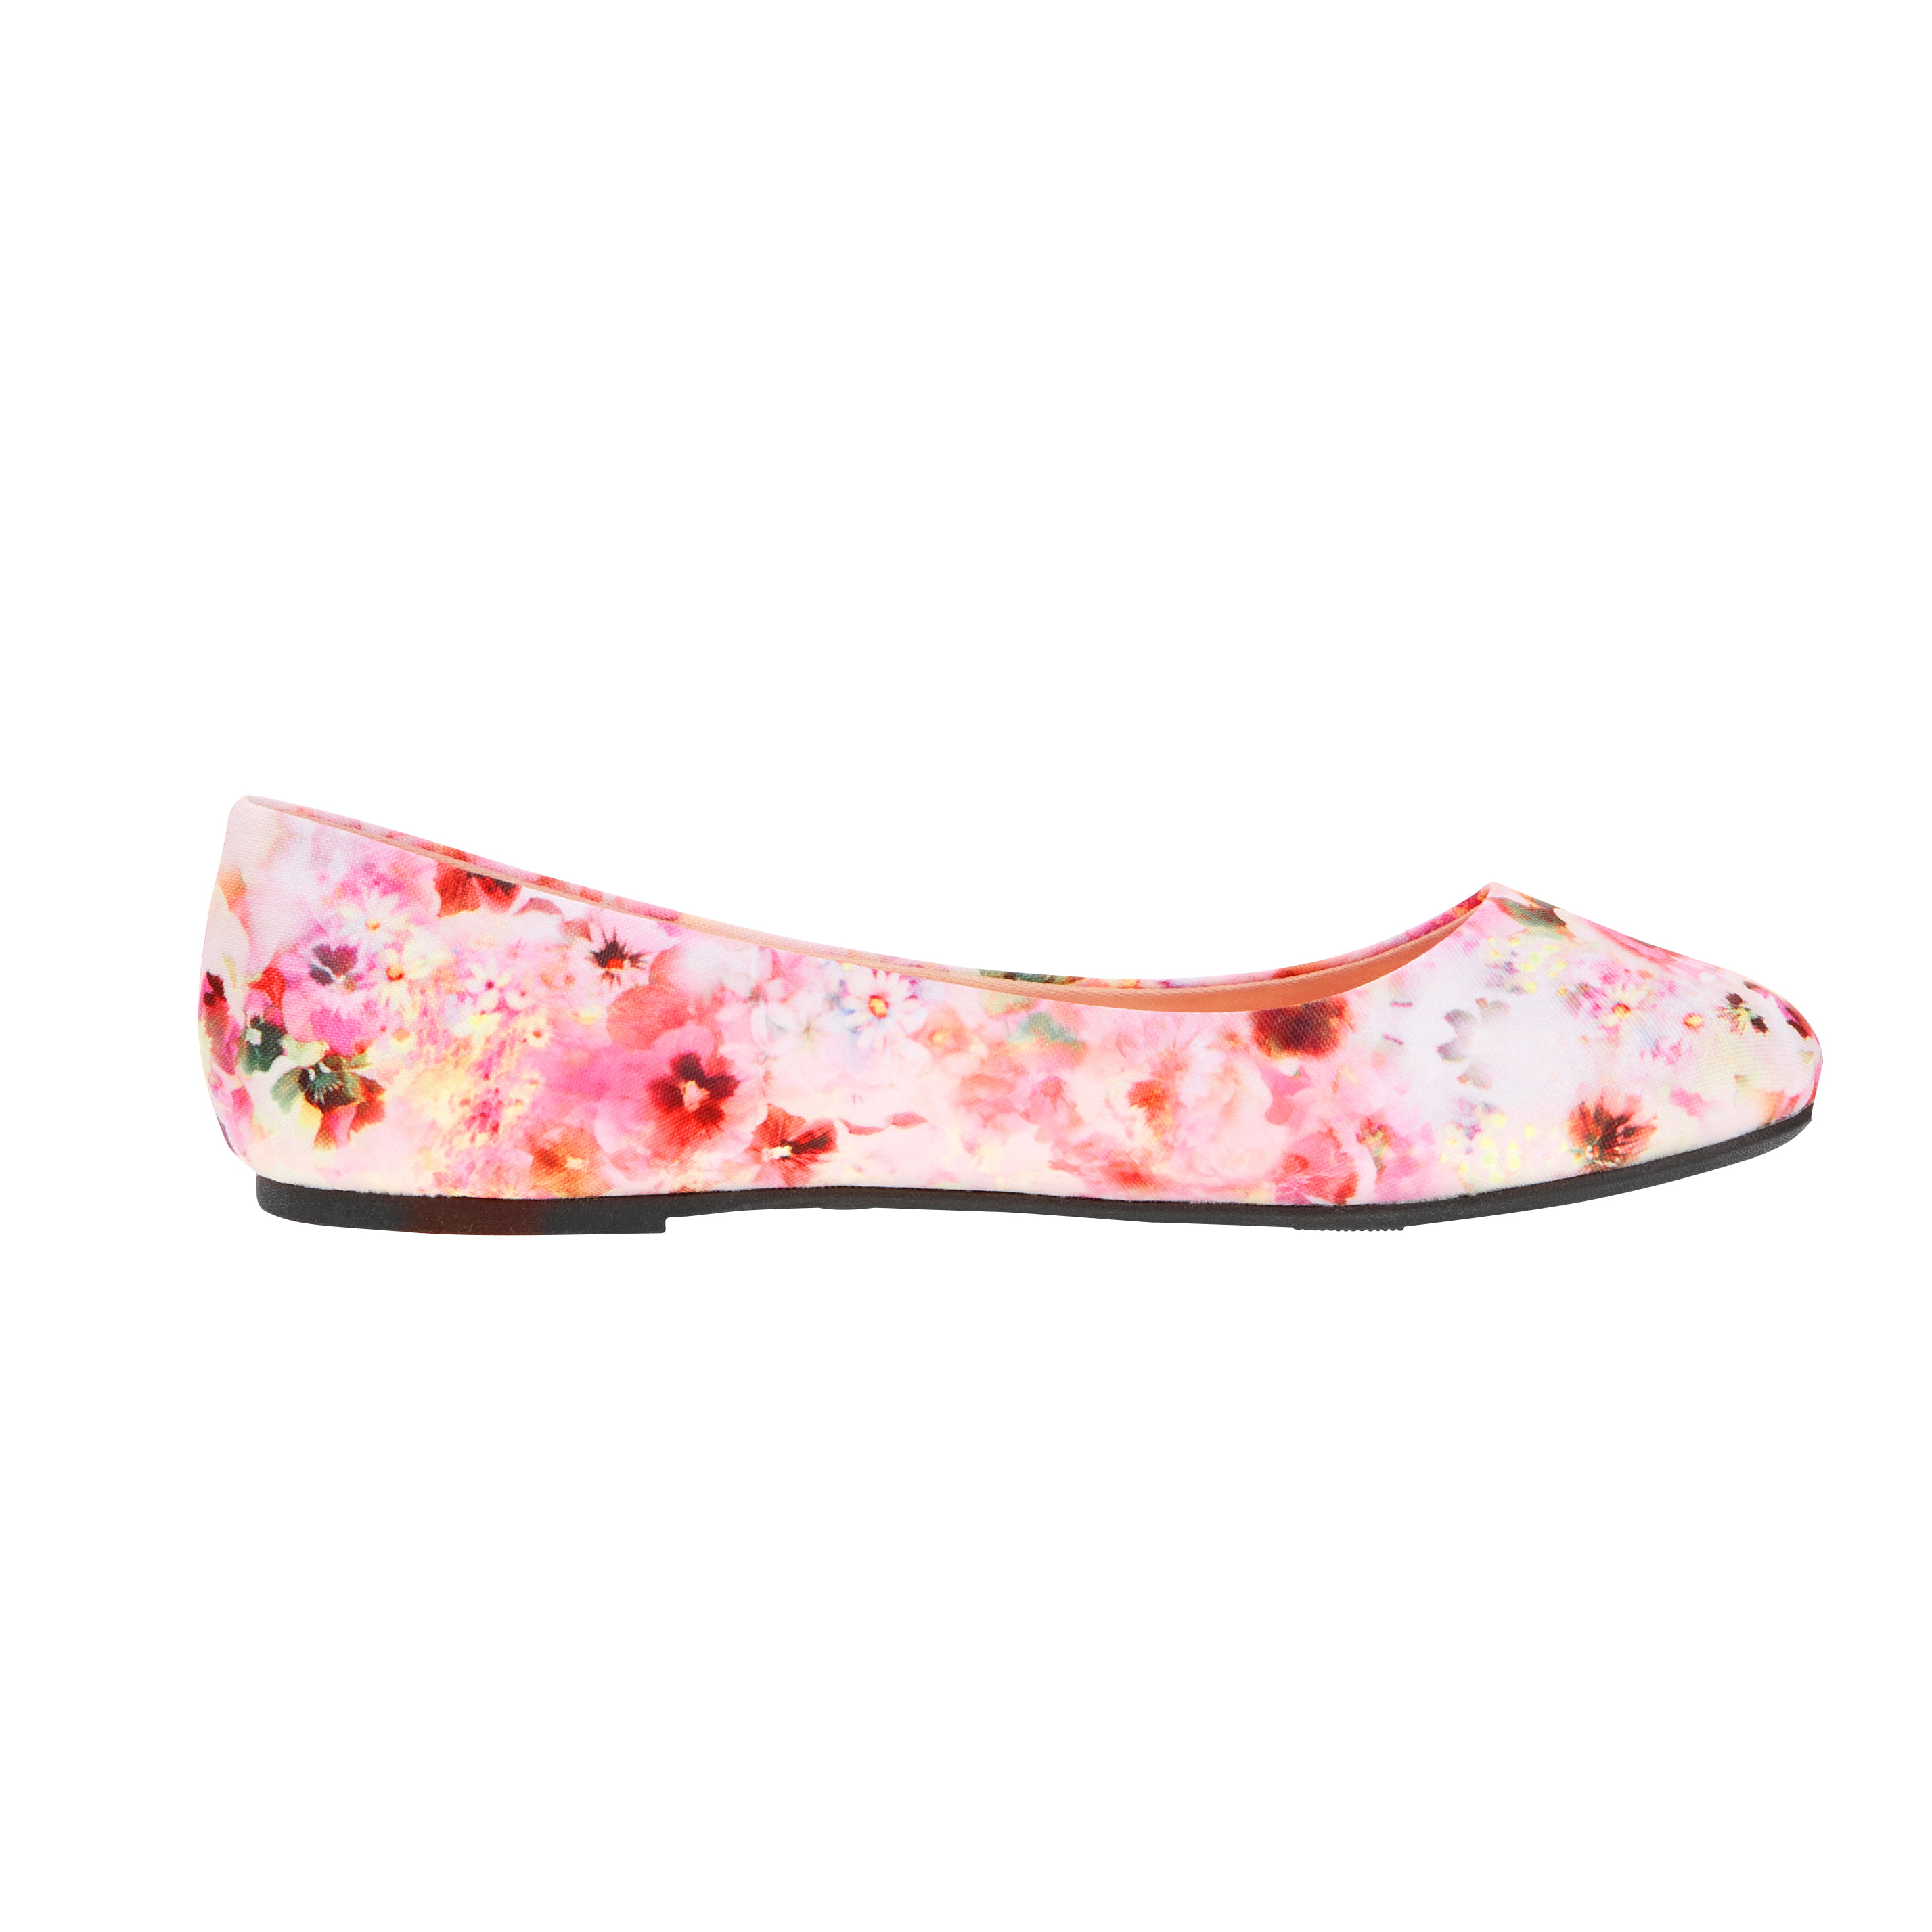 b35323afa96c Time and Tru Women s Medium and Wide Width Basic Ballet Flat ...